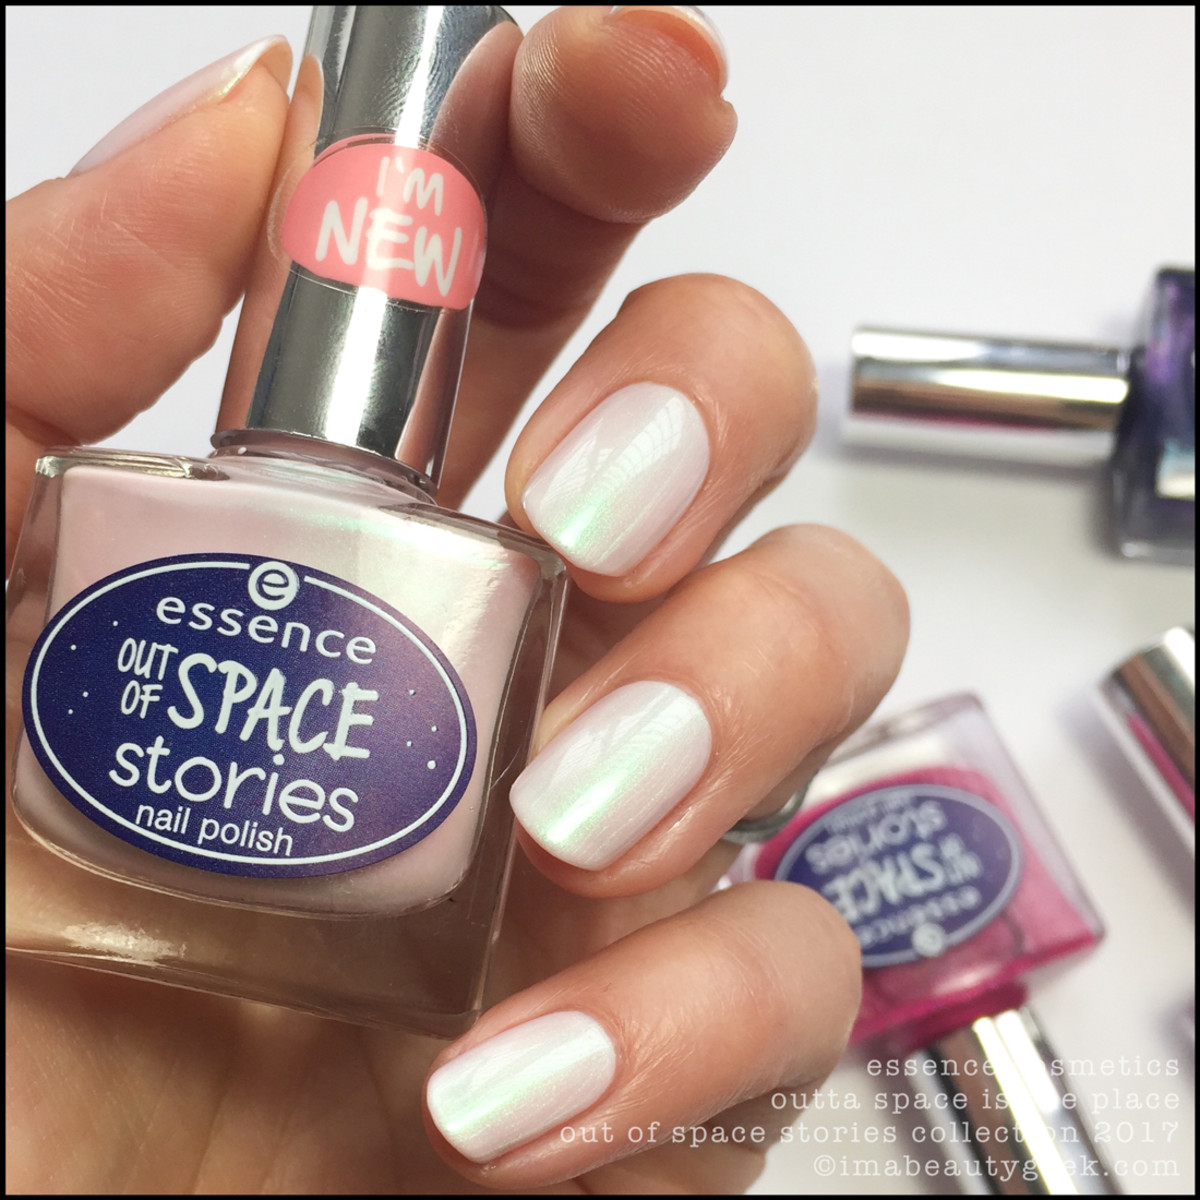 Essence Outta Space Is The Place Nail Polish Swatches